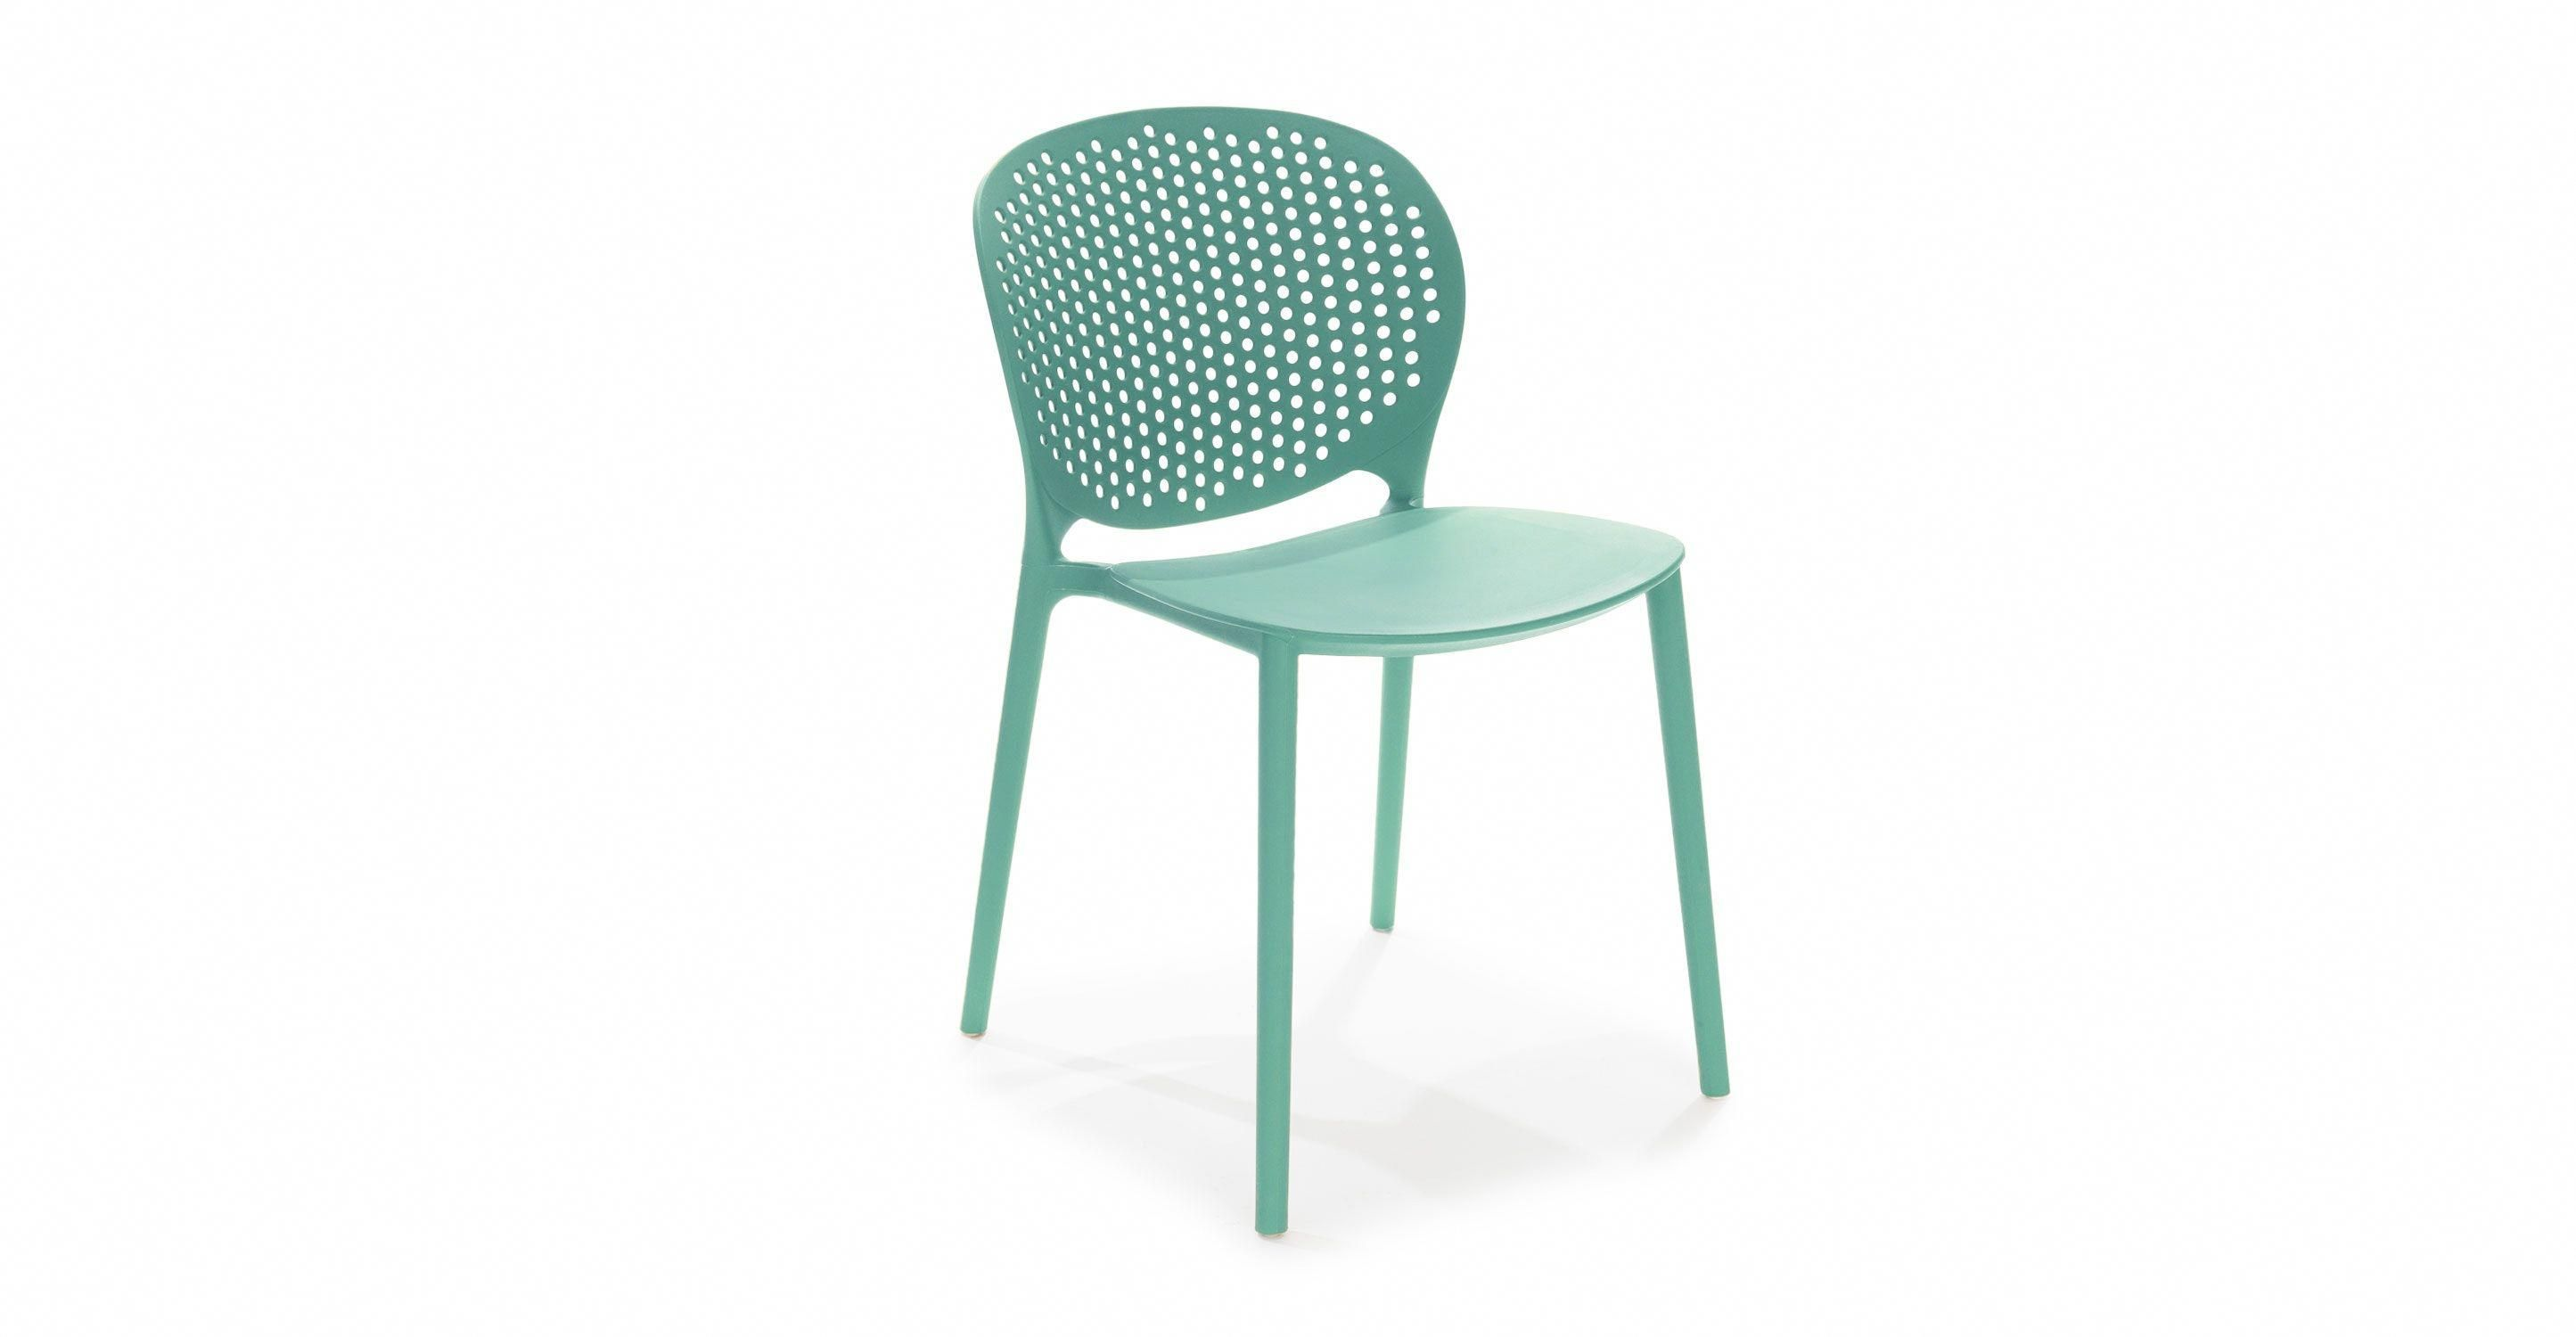 Dot malibu aqua dining chair chairs patterned armchair